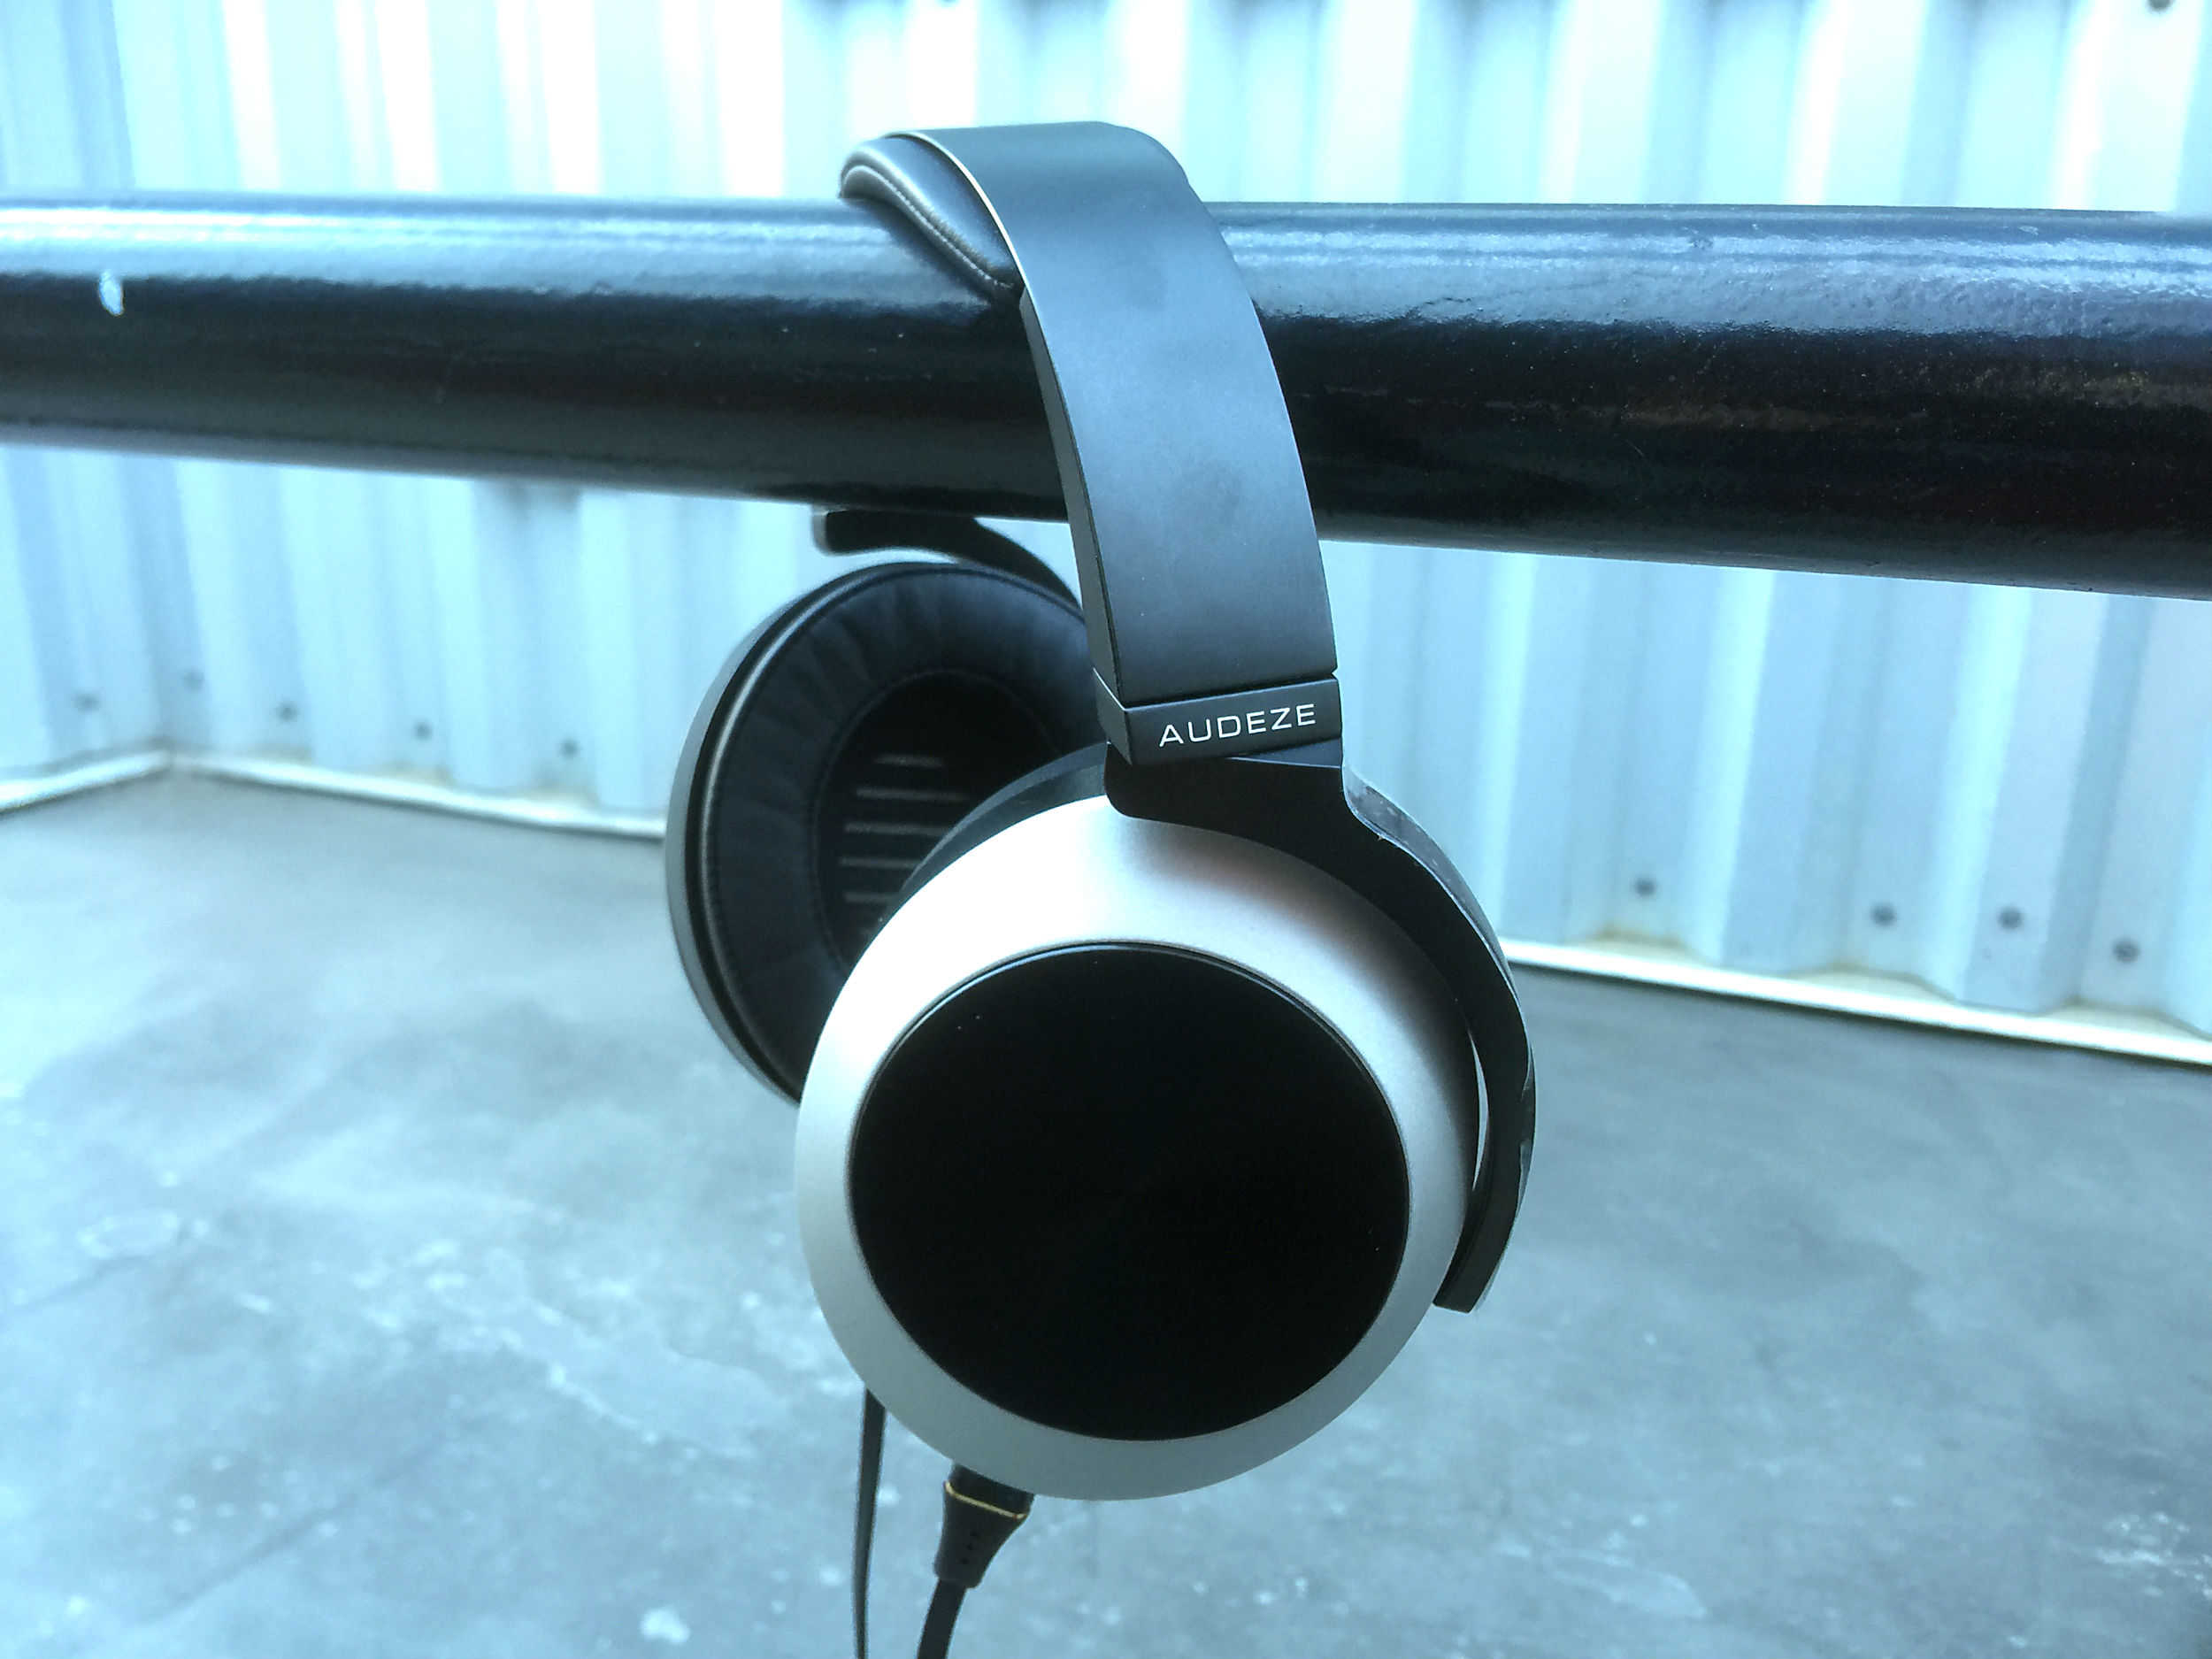 Audeze EL-8 headphones